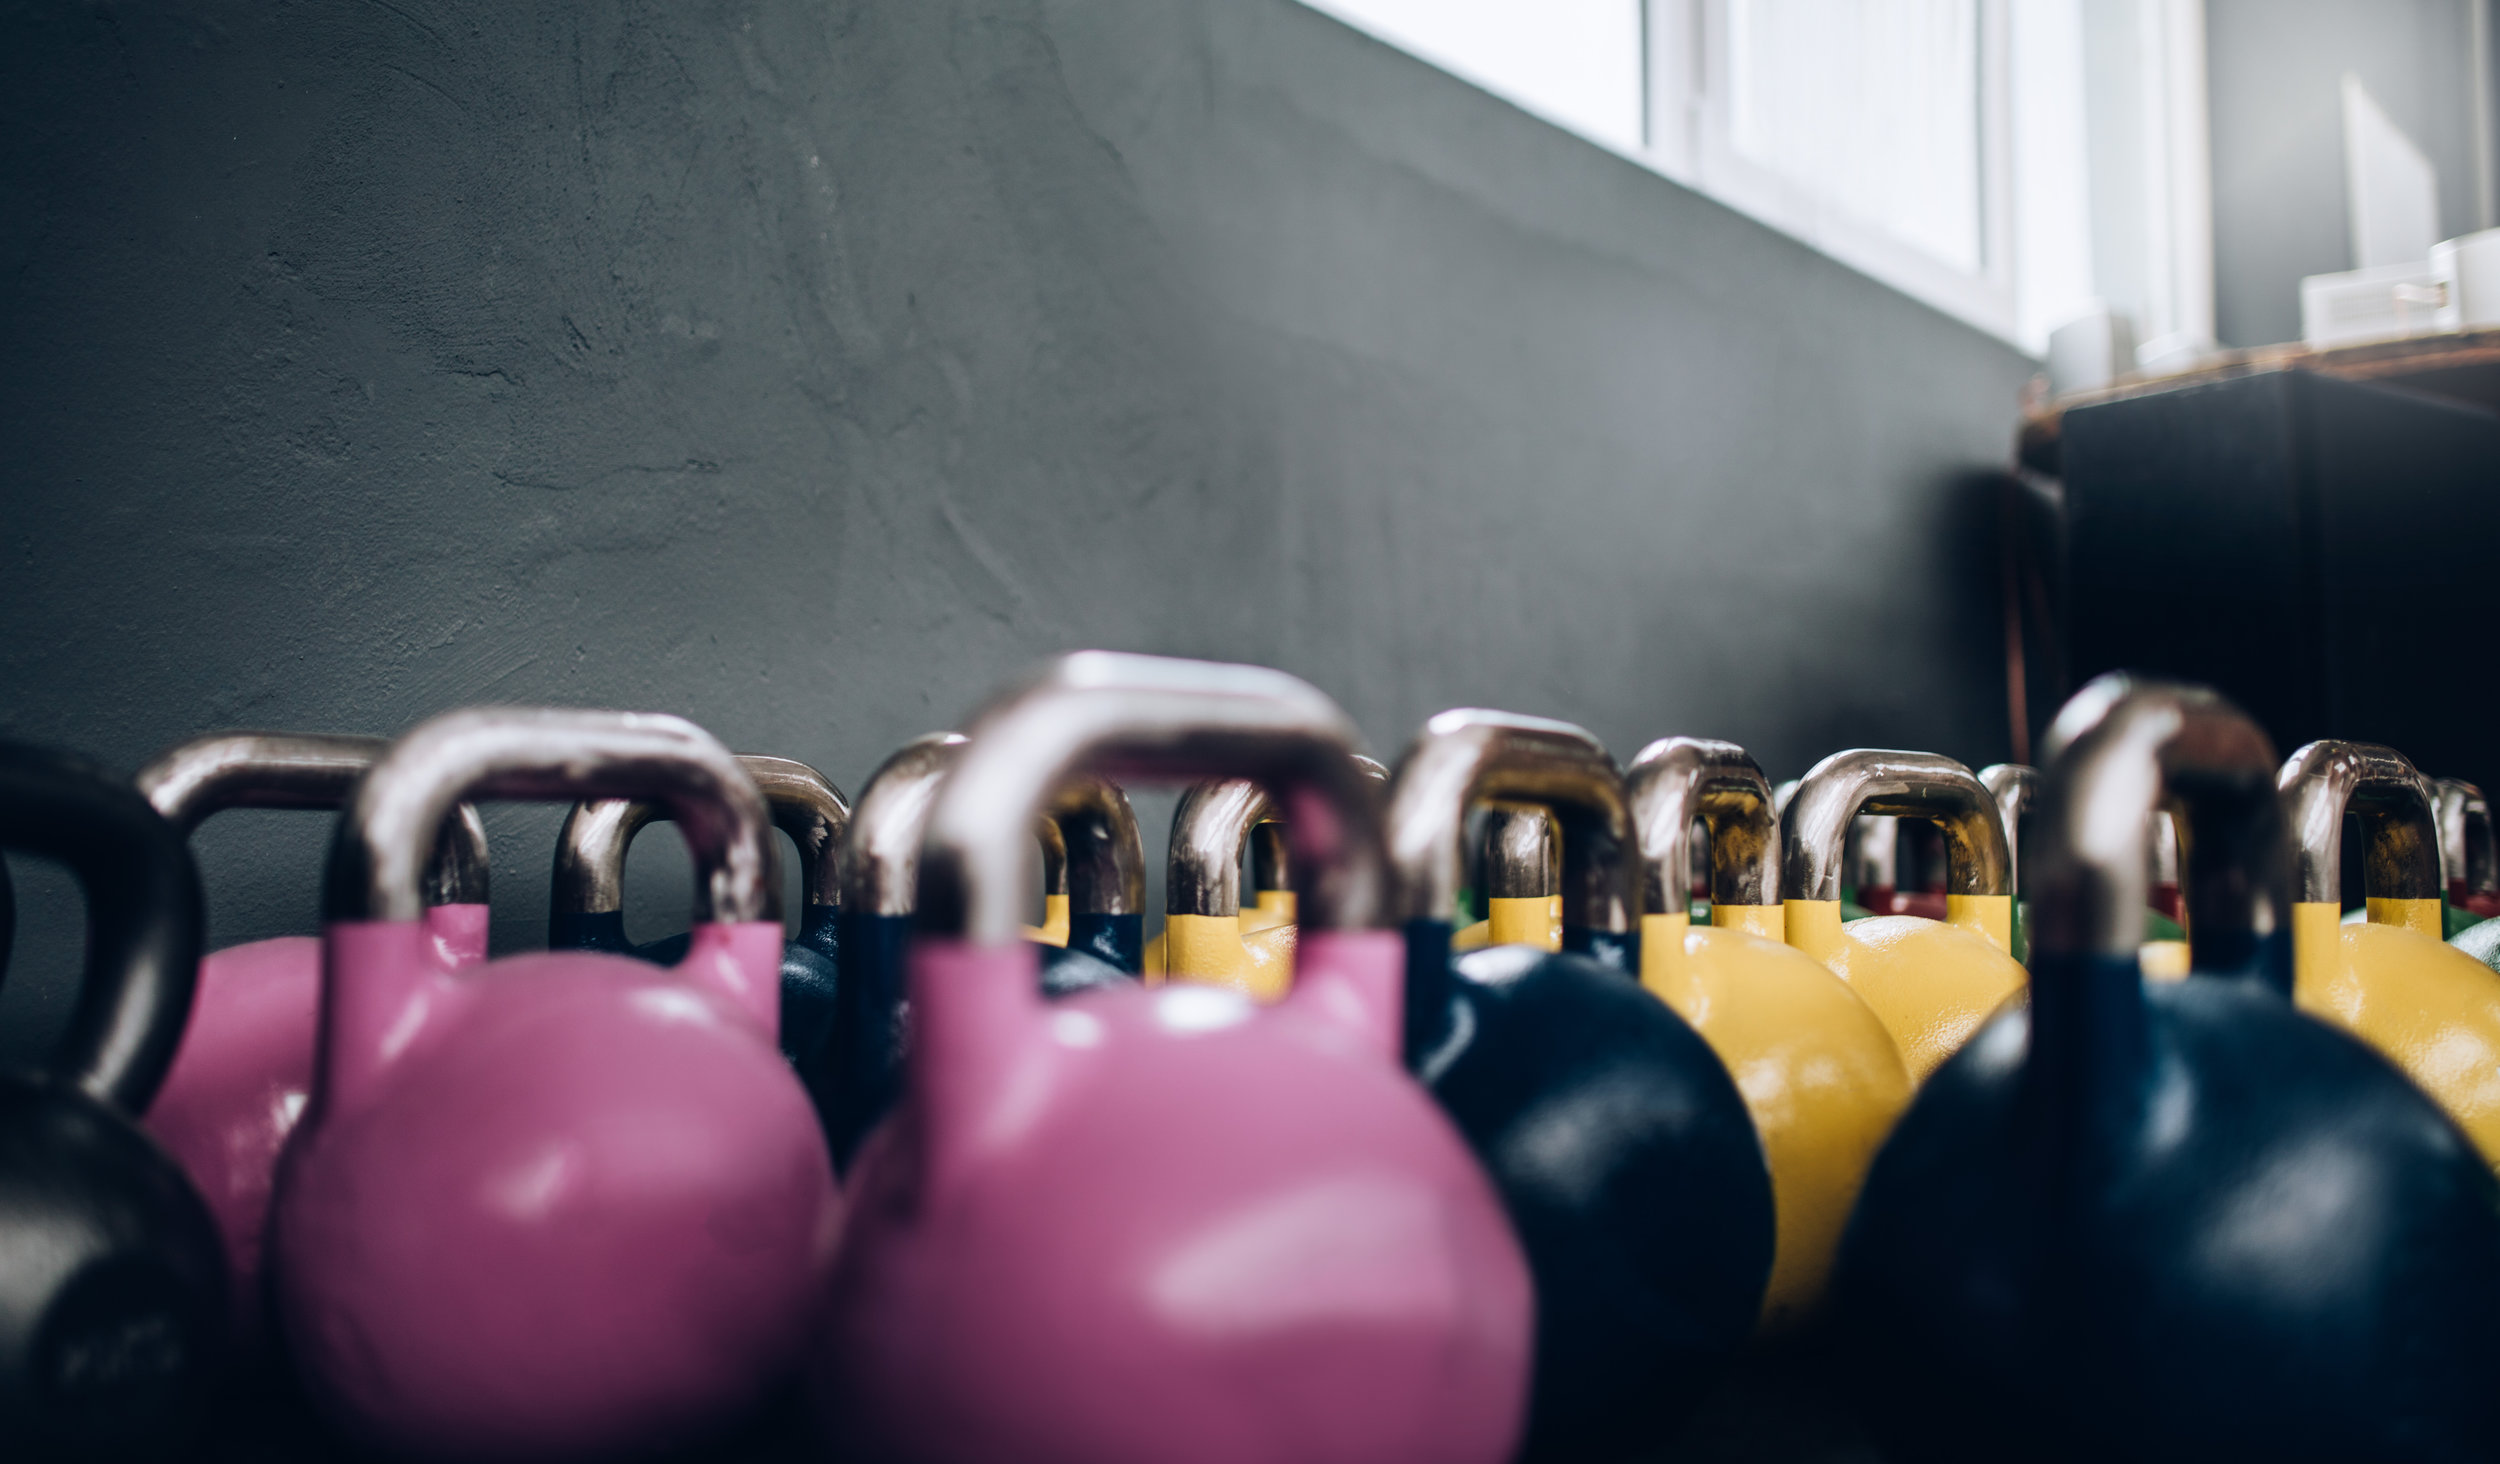 Canva - Close-up of Kettle Bells standing in gym Gym.jpg